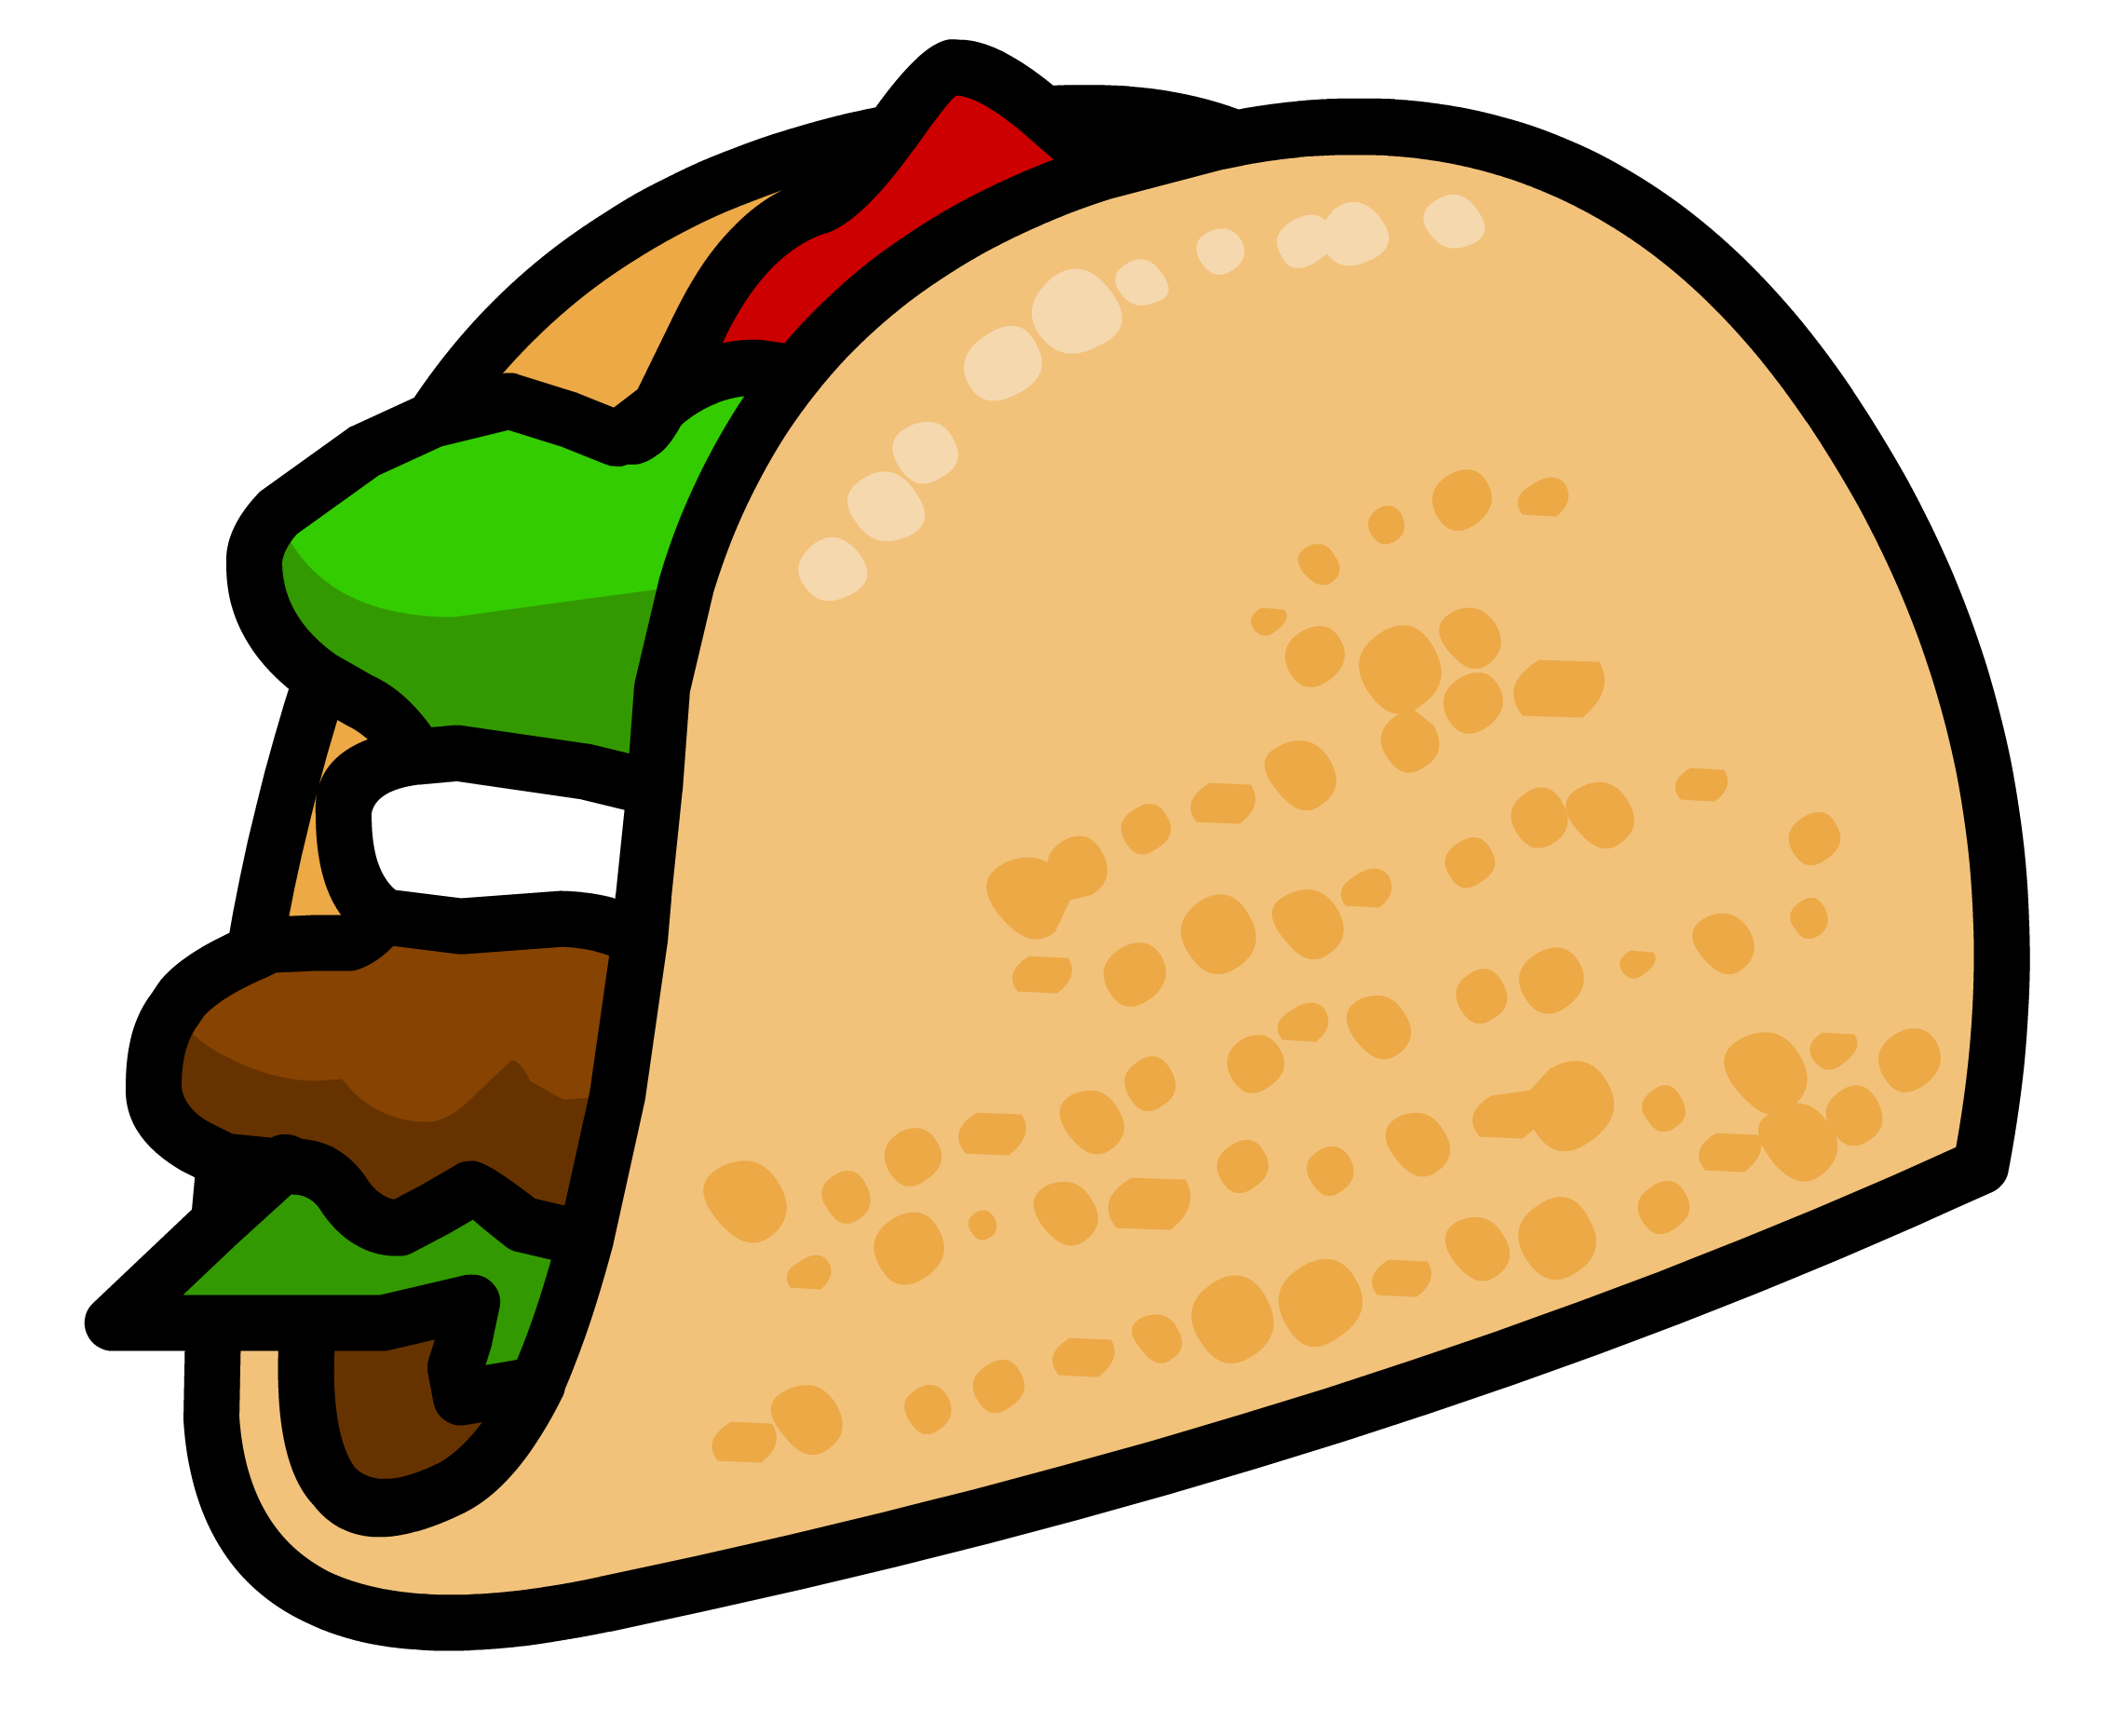 Image taco pin png. Tacos clipart illustration png black and white library